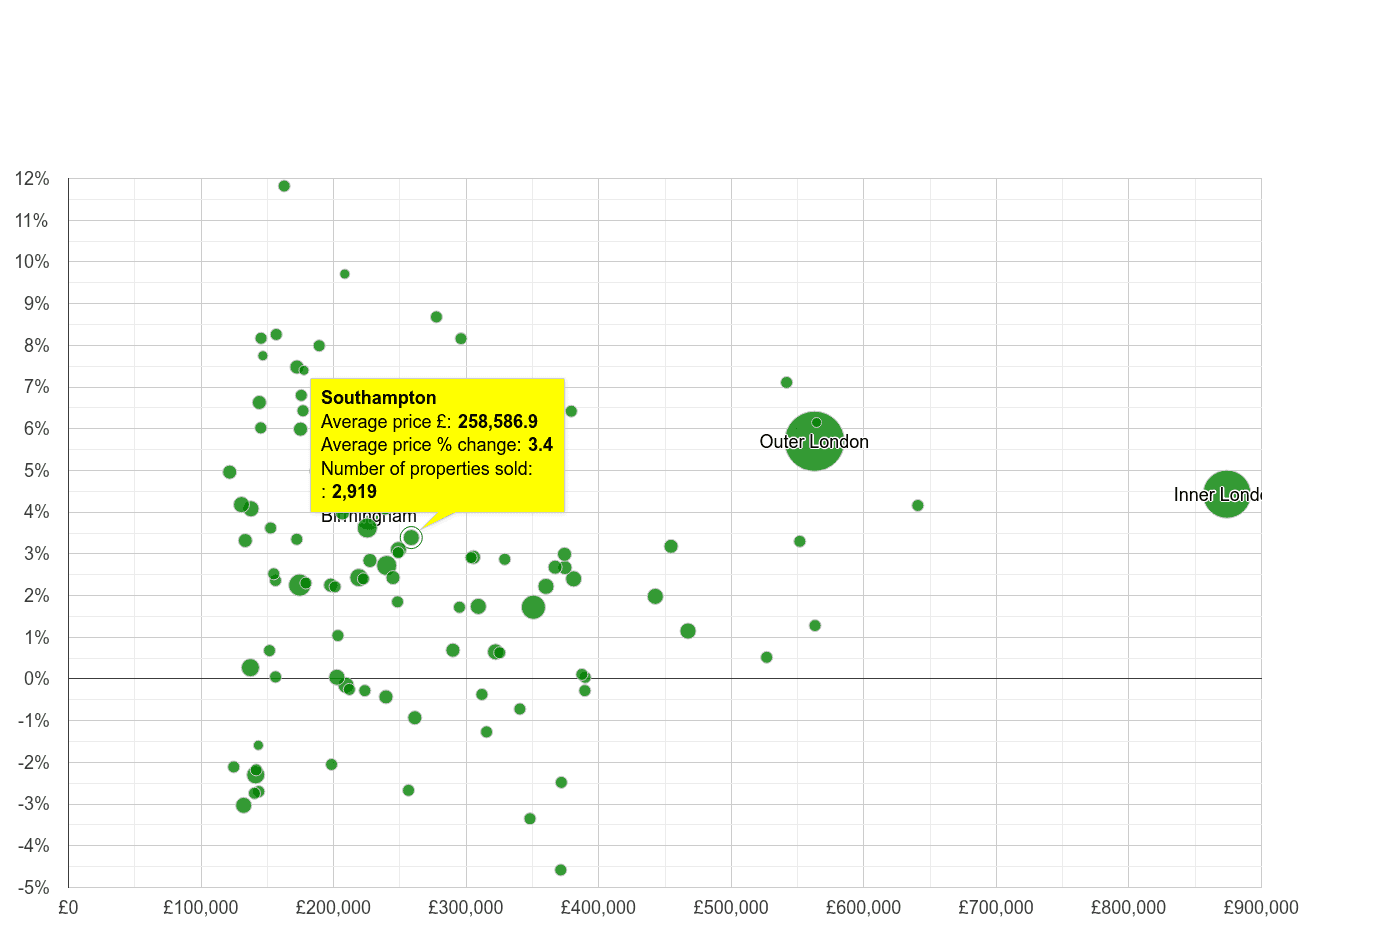 Southampton house prices compared to other cities